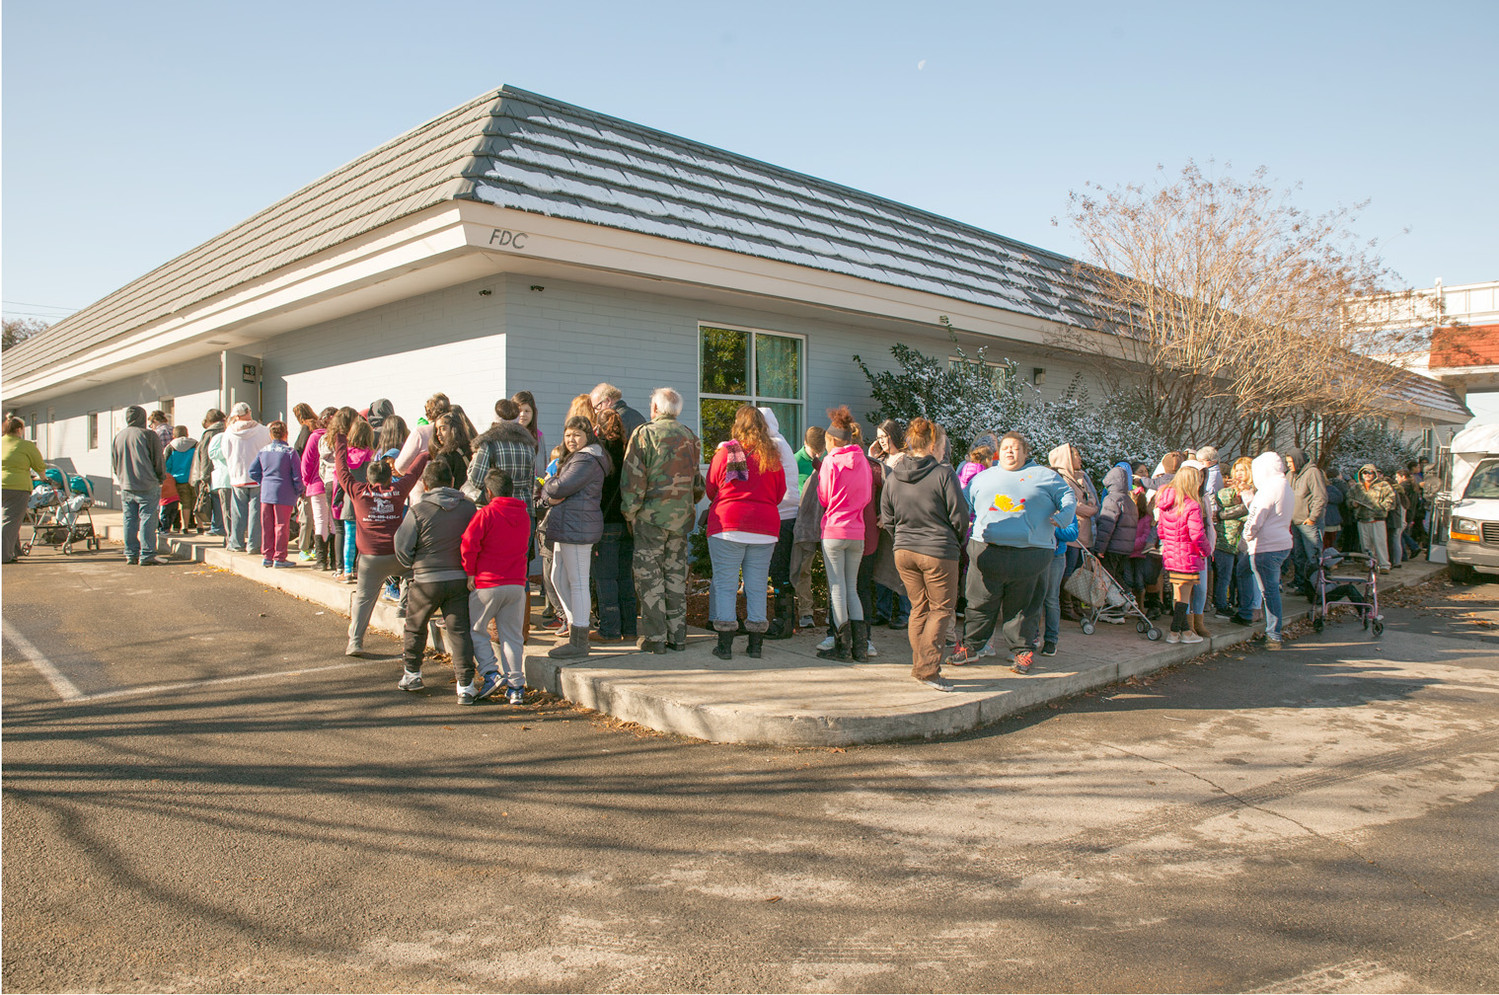 THE CATCH THE SPIRIT event was a hit, with a line well beyond the hall and wrapped around the building at lunch time.